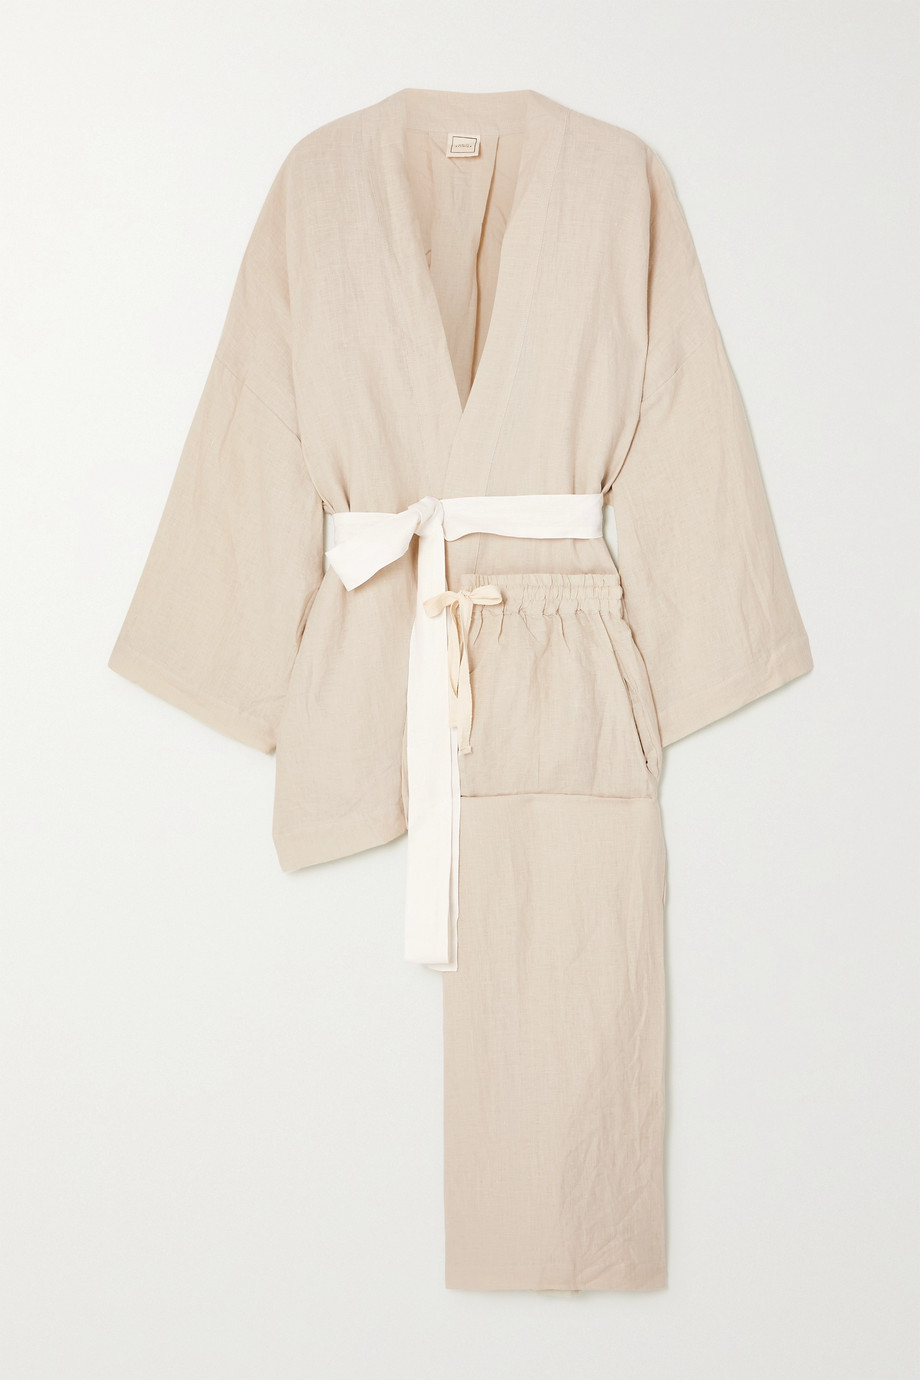 Deiji Studios The 01 washed-linen belted top and pants set